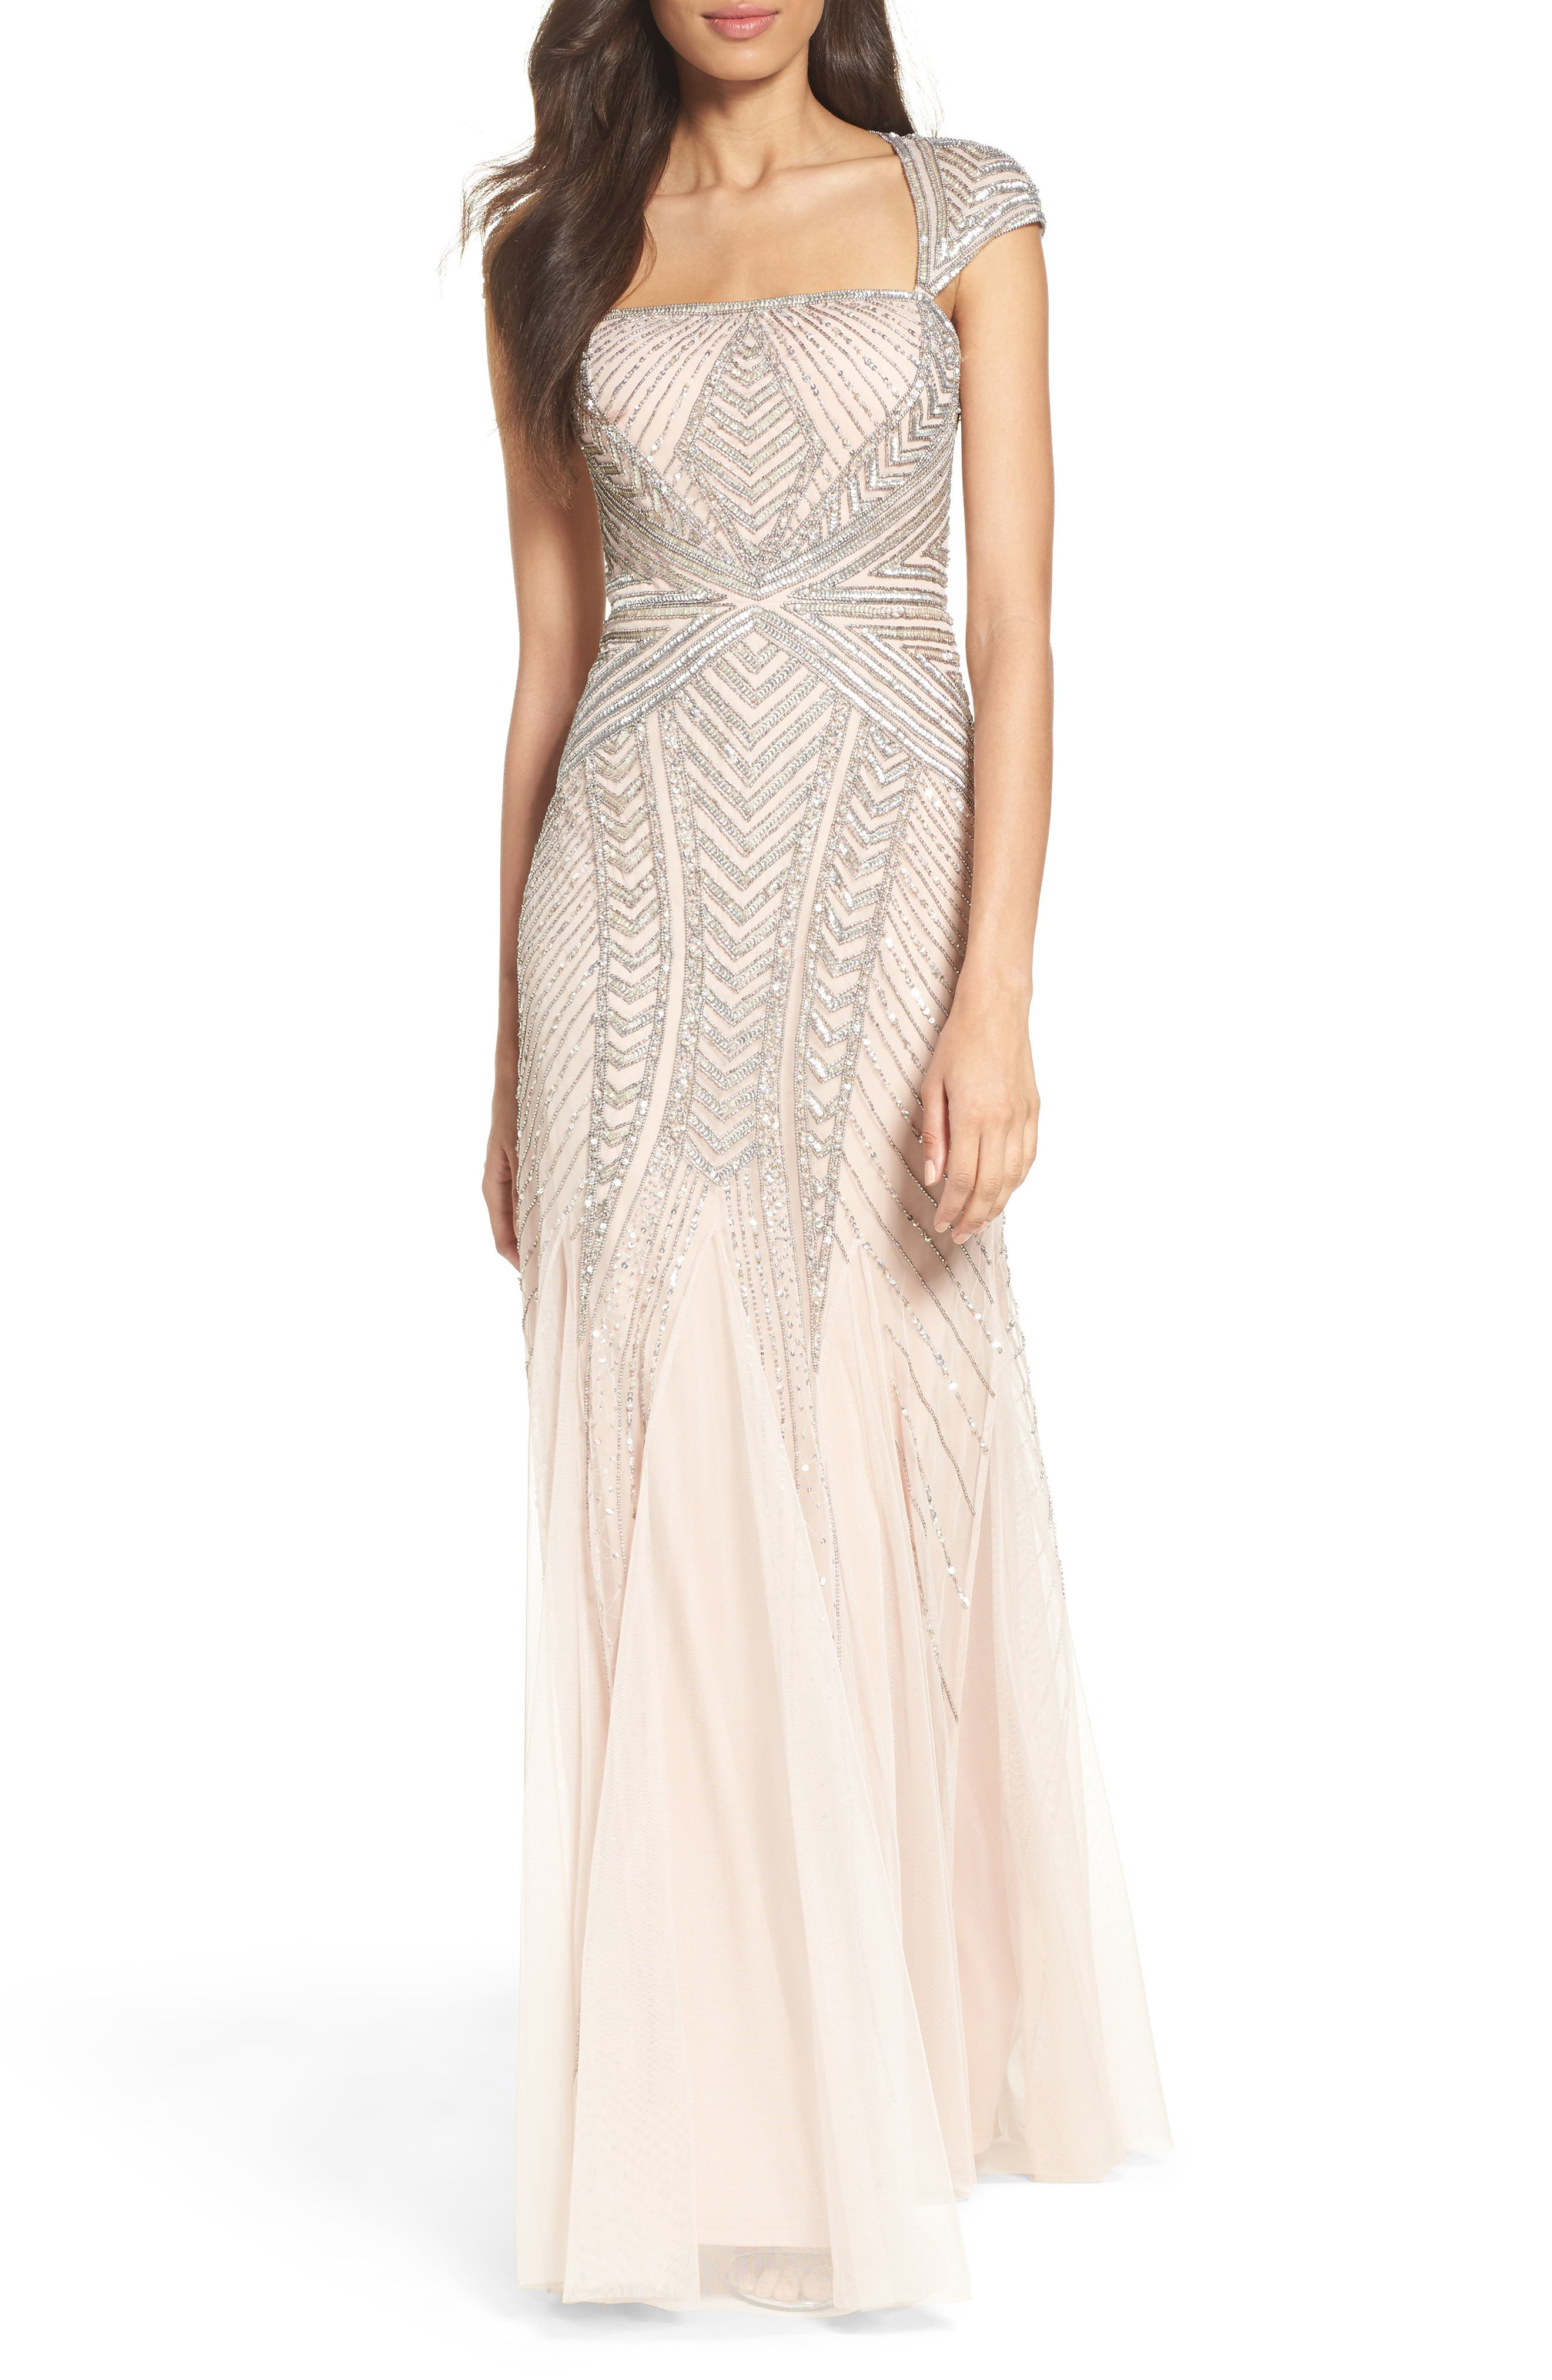 Adrianna Papell Envelope Embellished Mesh Gown (Regular & Petite)